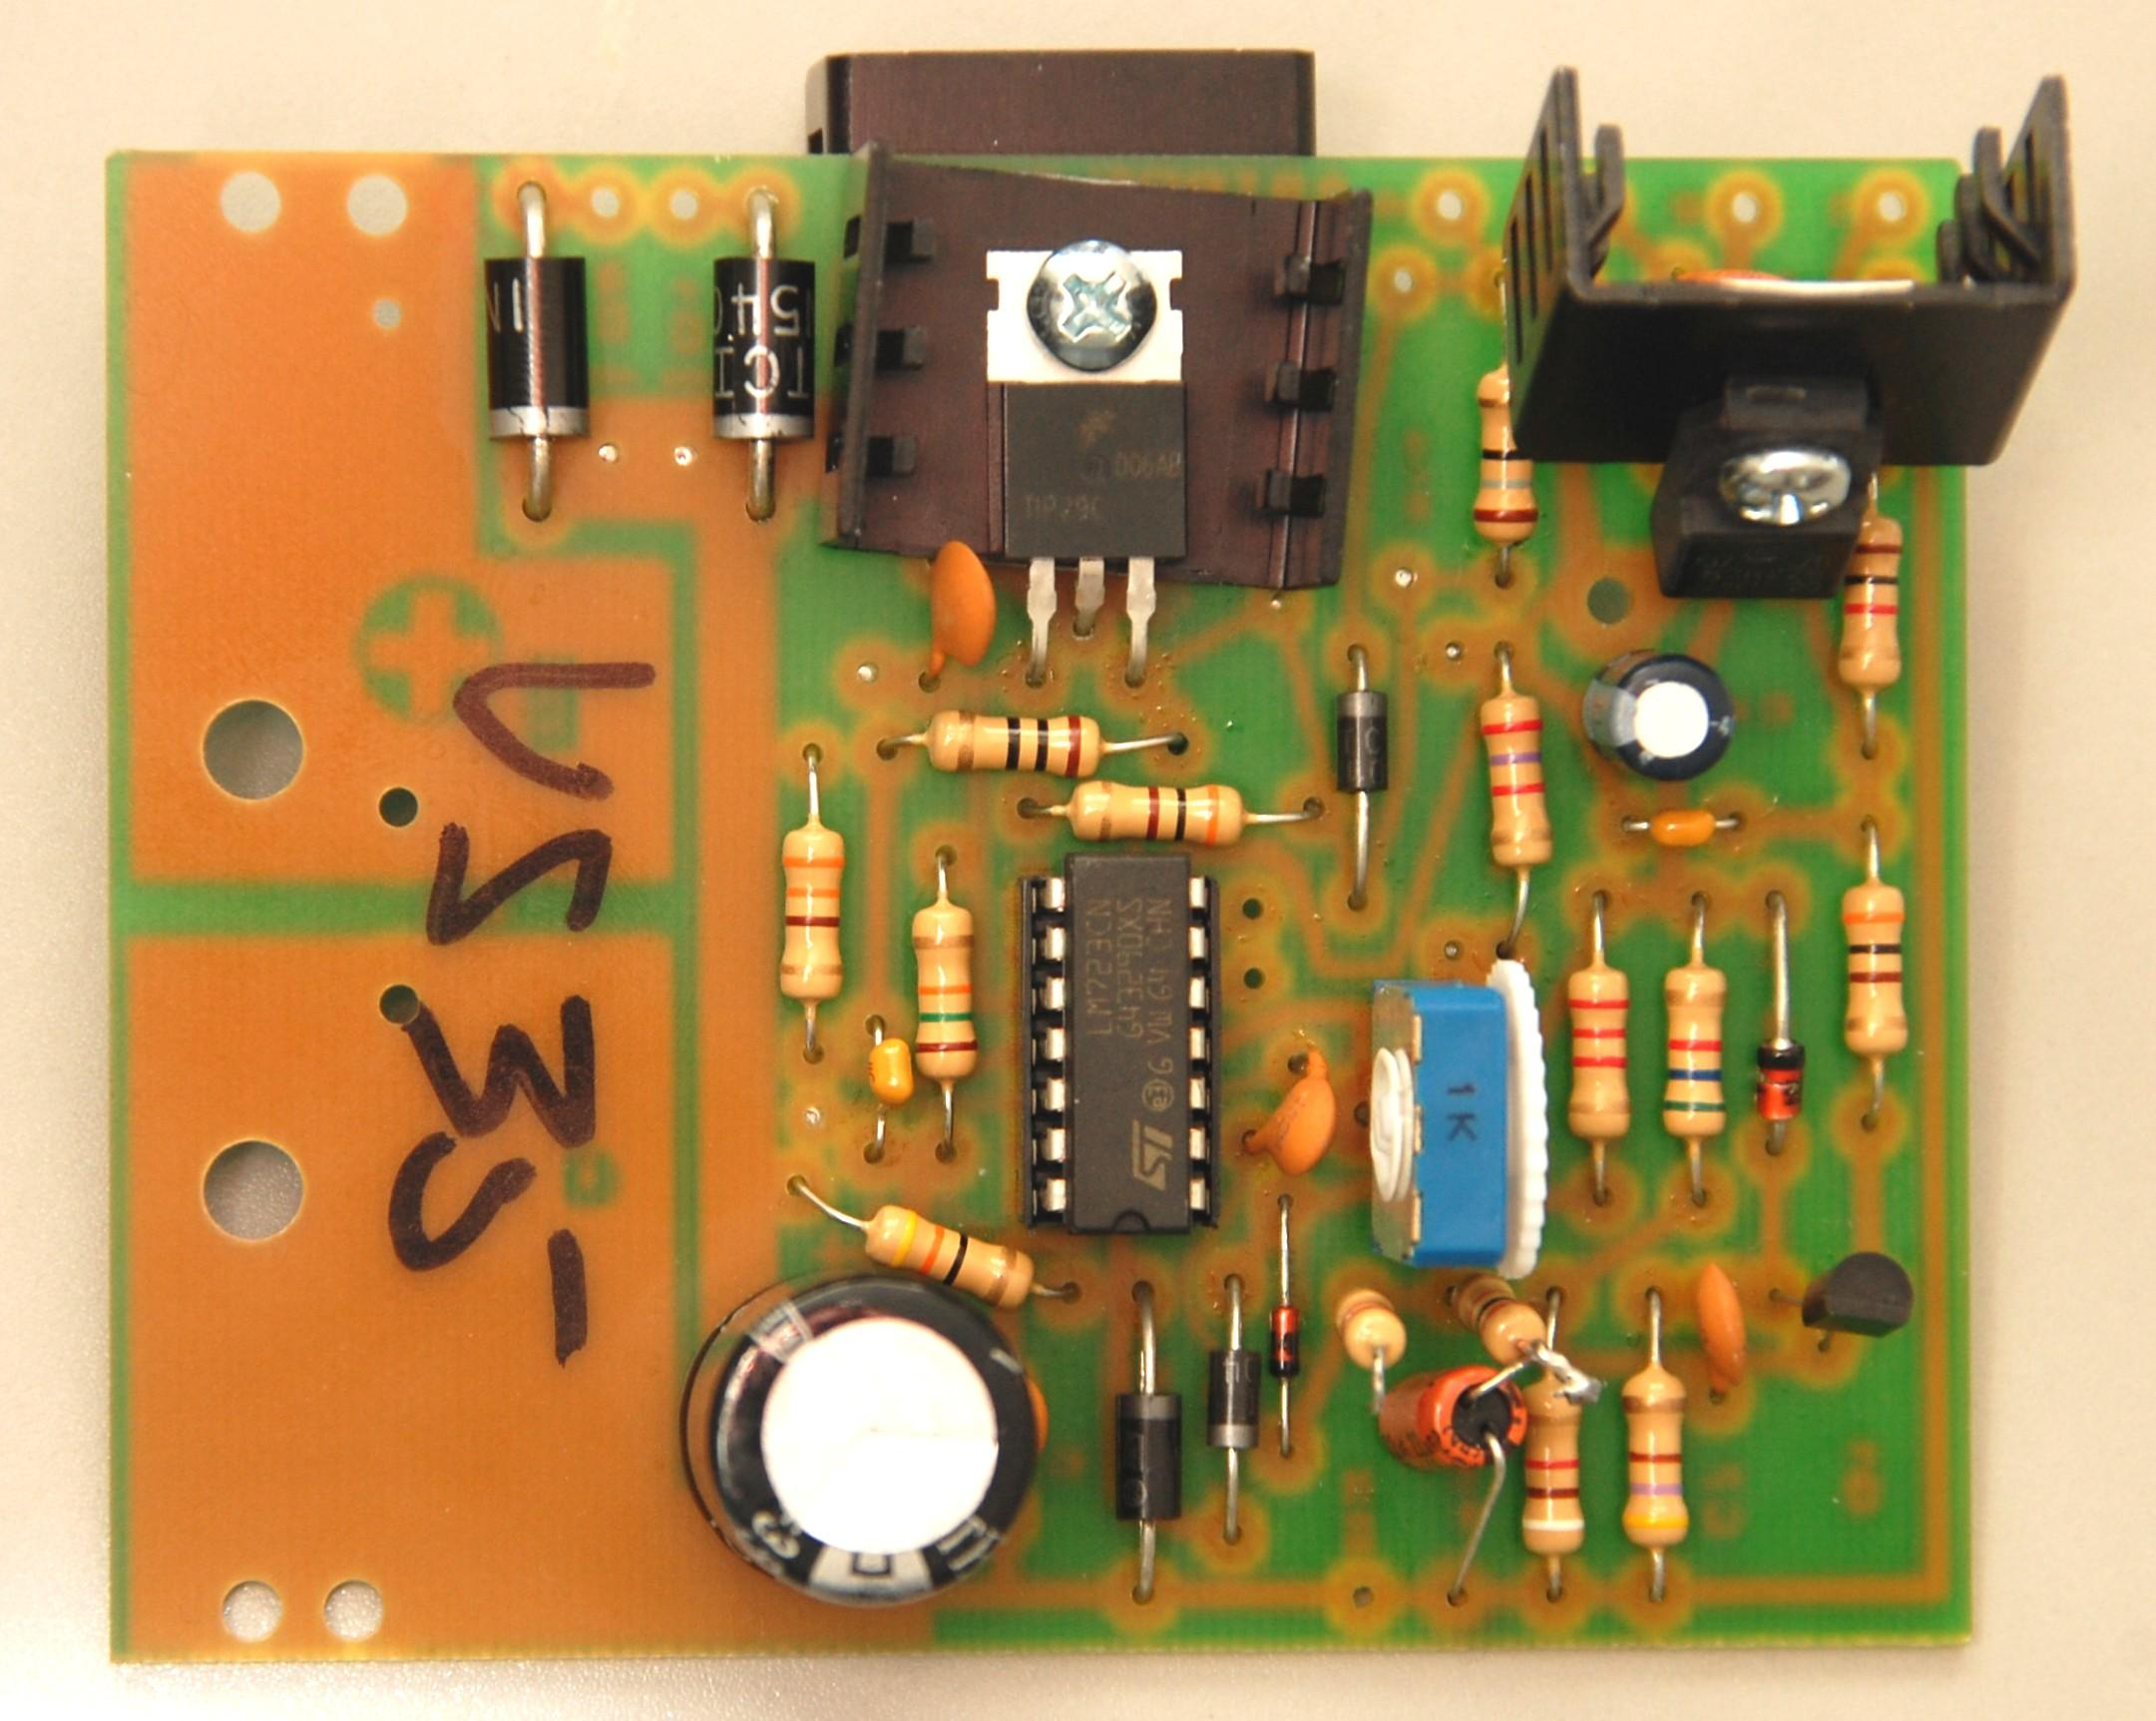 Astron Power Supply Index Page Supplies Discrete Semiconductor Devices And Circuits Of A Brand New Regulator Board Ordered In 2014 For Vs35 Courtesy Bob Mckinlay Ve3dj The Blue Adjustable Potentiometer Marked 1k On